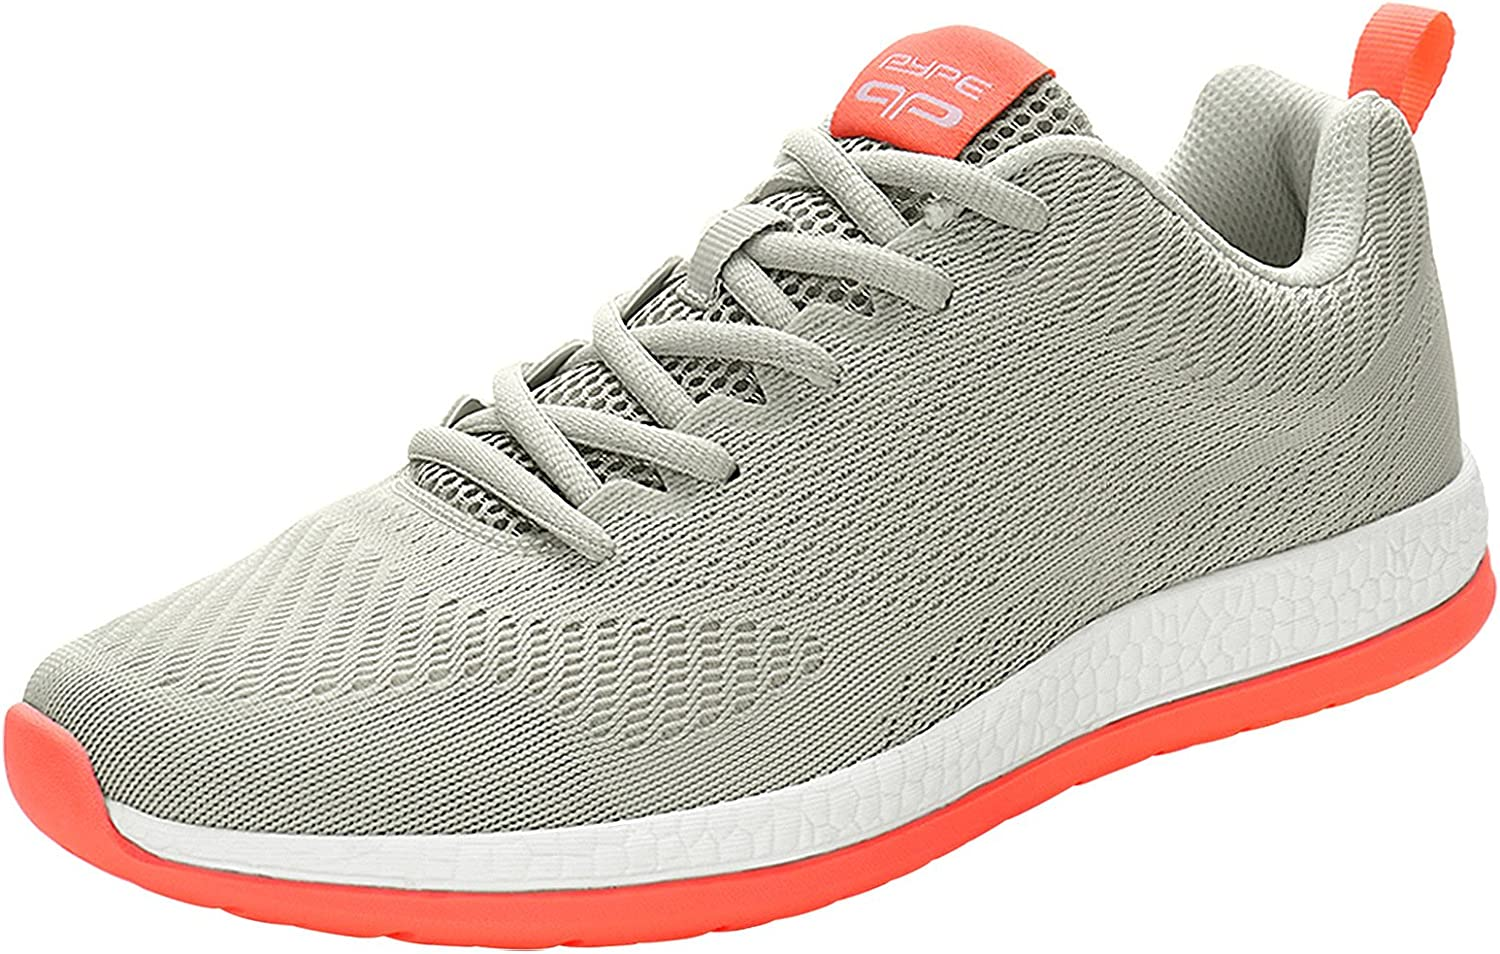 PYPE Women's Breathable Running Shoes